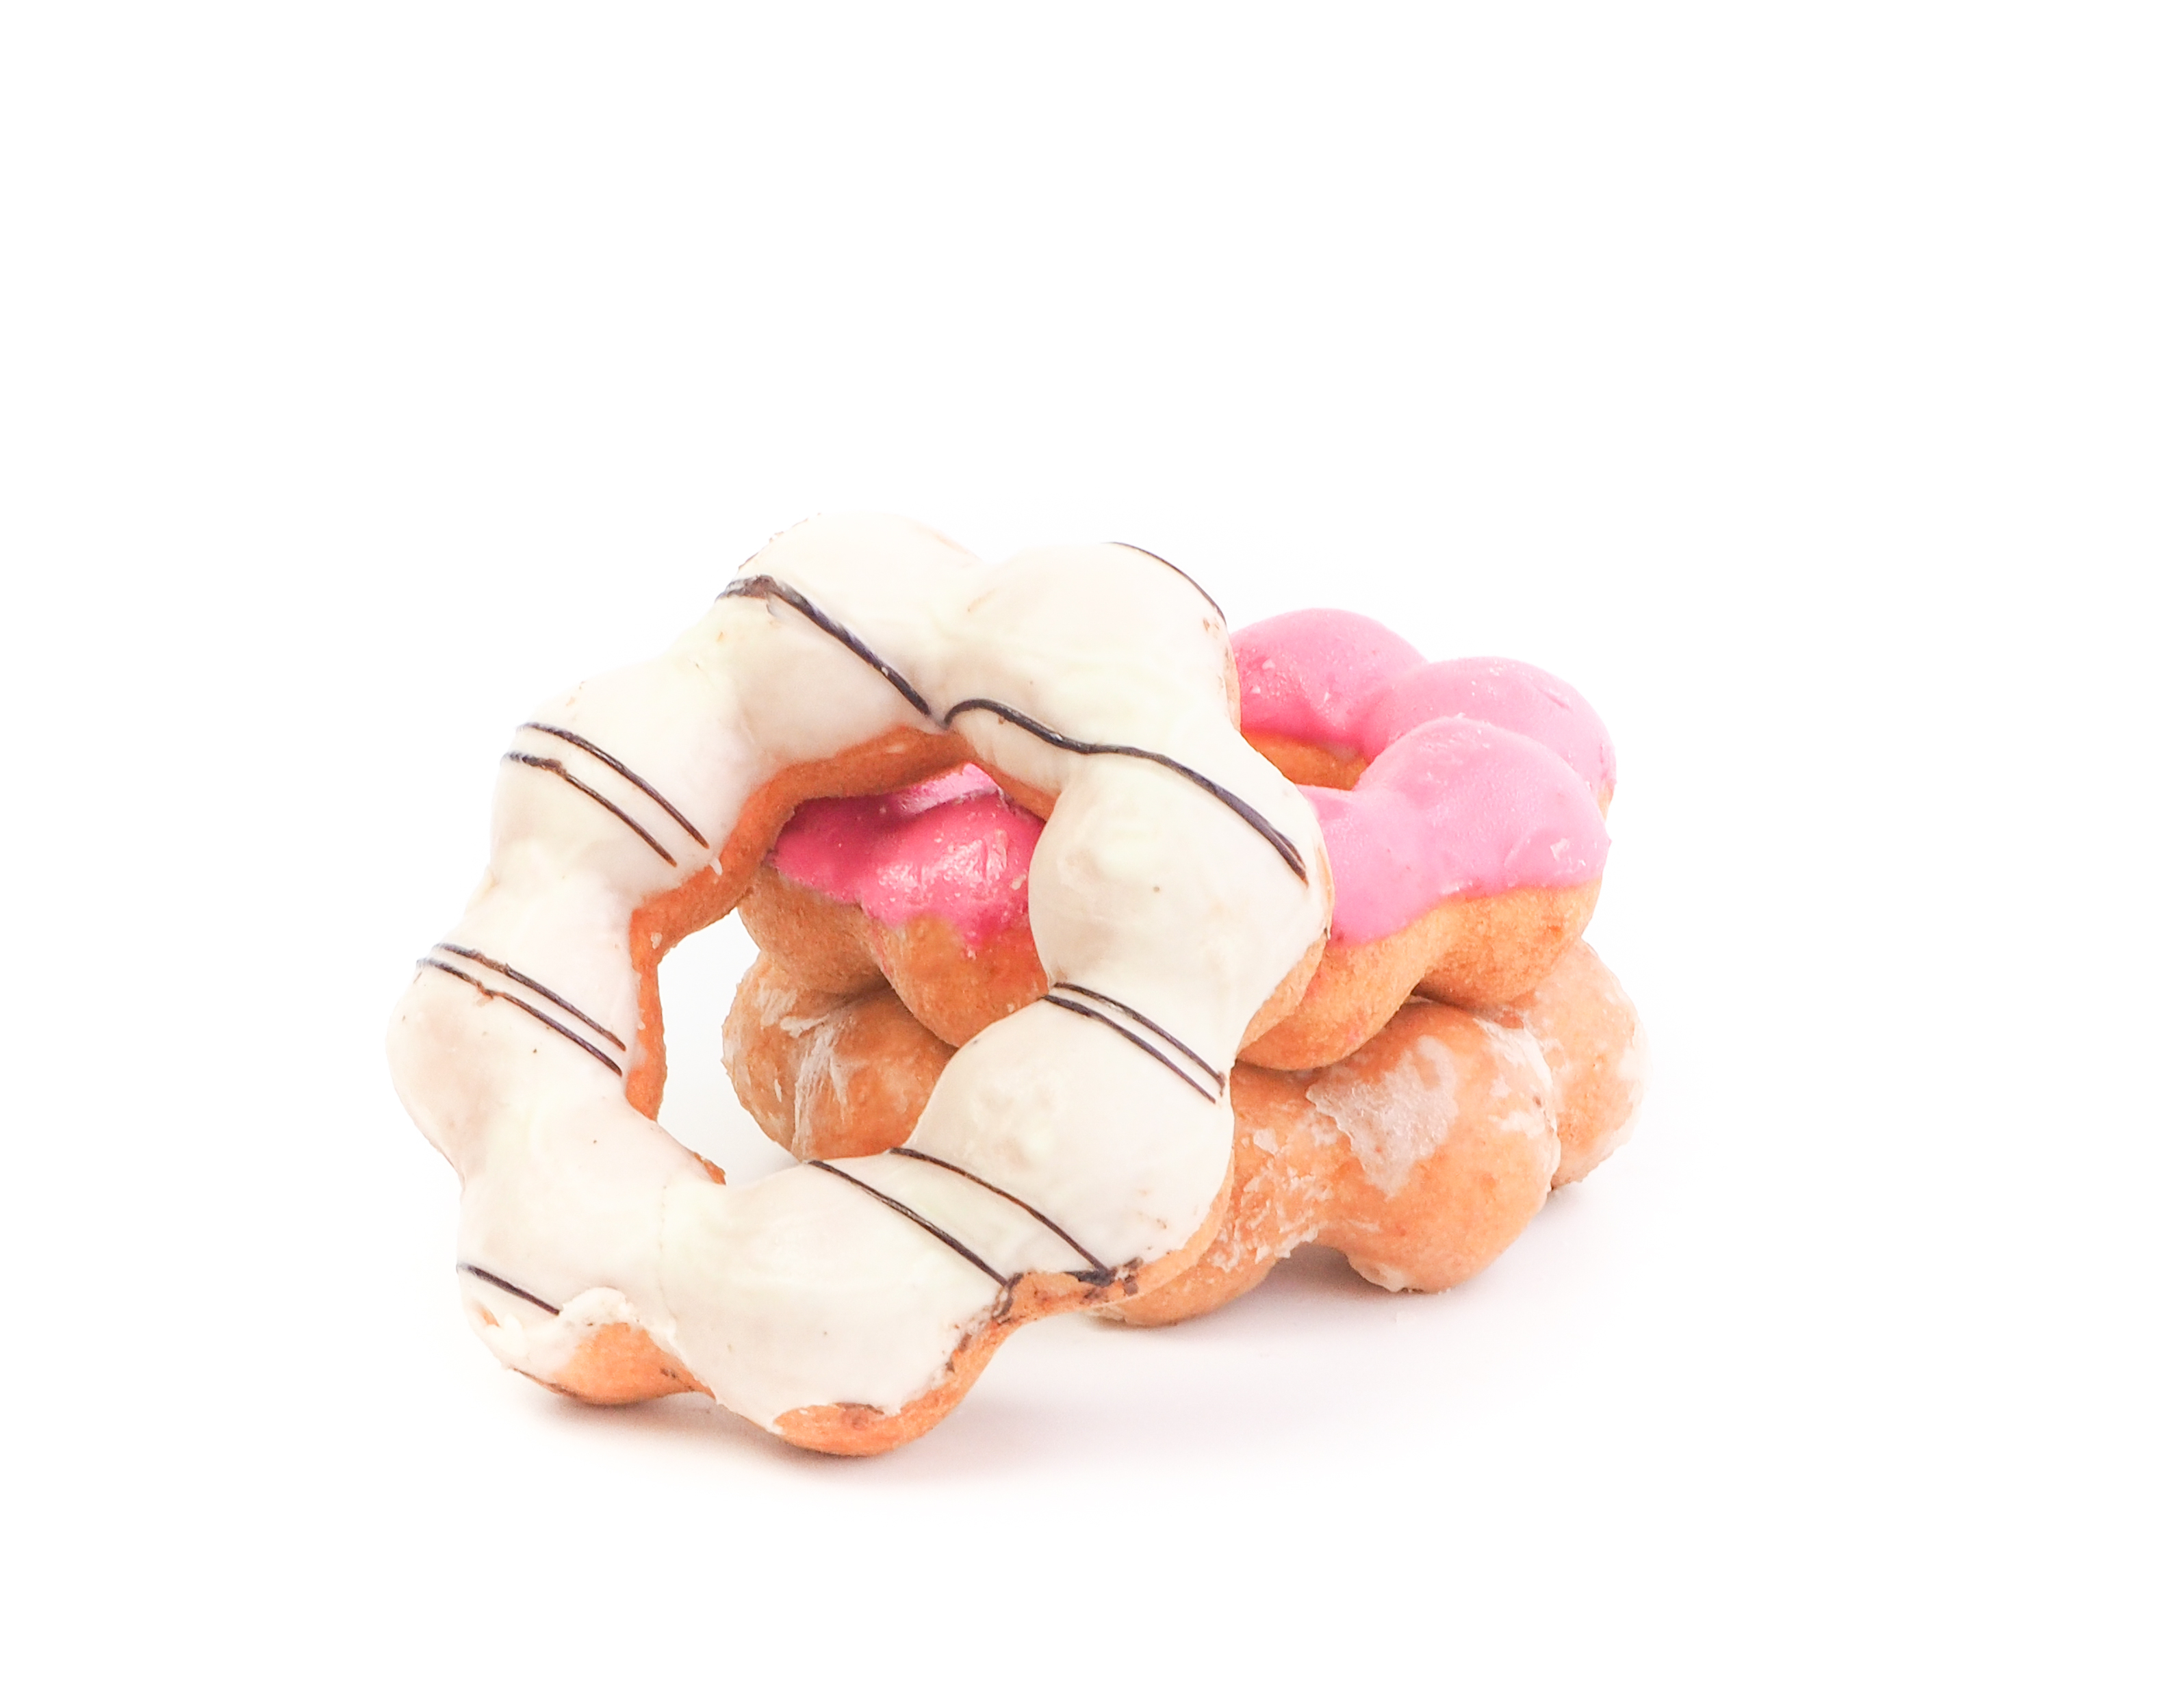 Two mochi doughnuts are stacked on each other and a third leans against the pile, all isolated on a white background. Each doughnut is frosted differently.